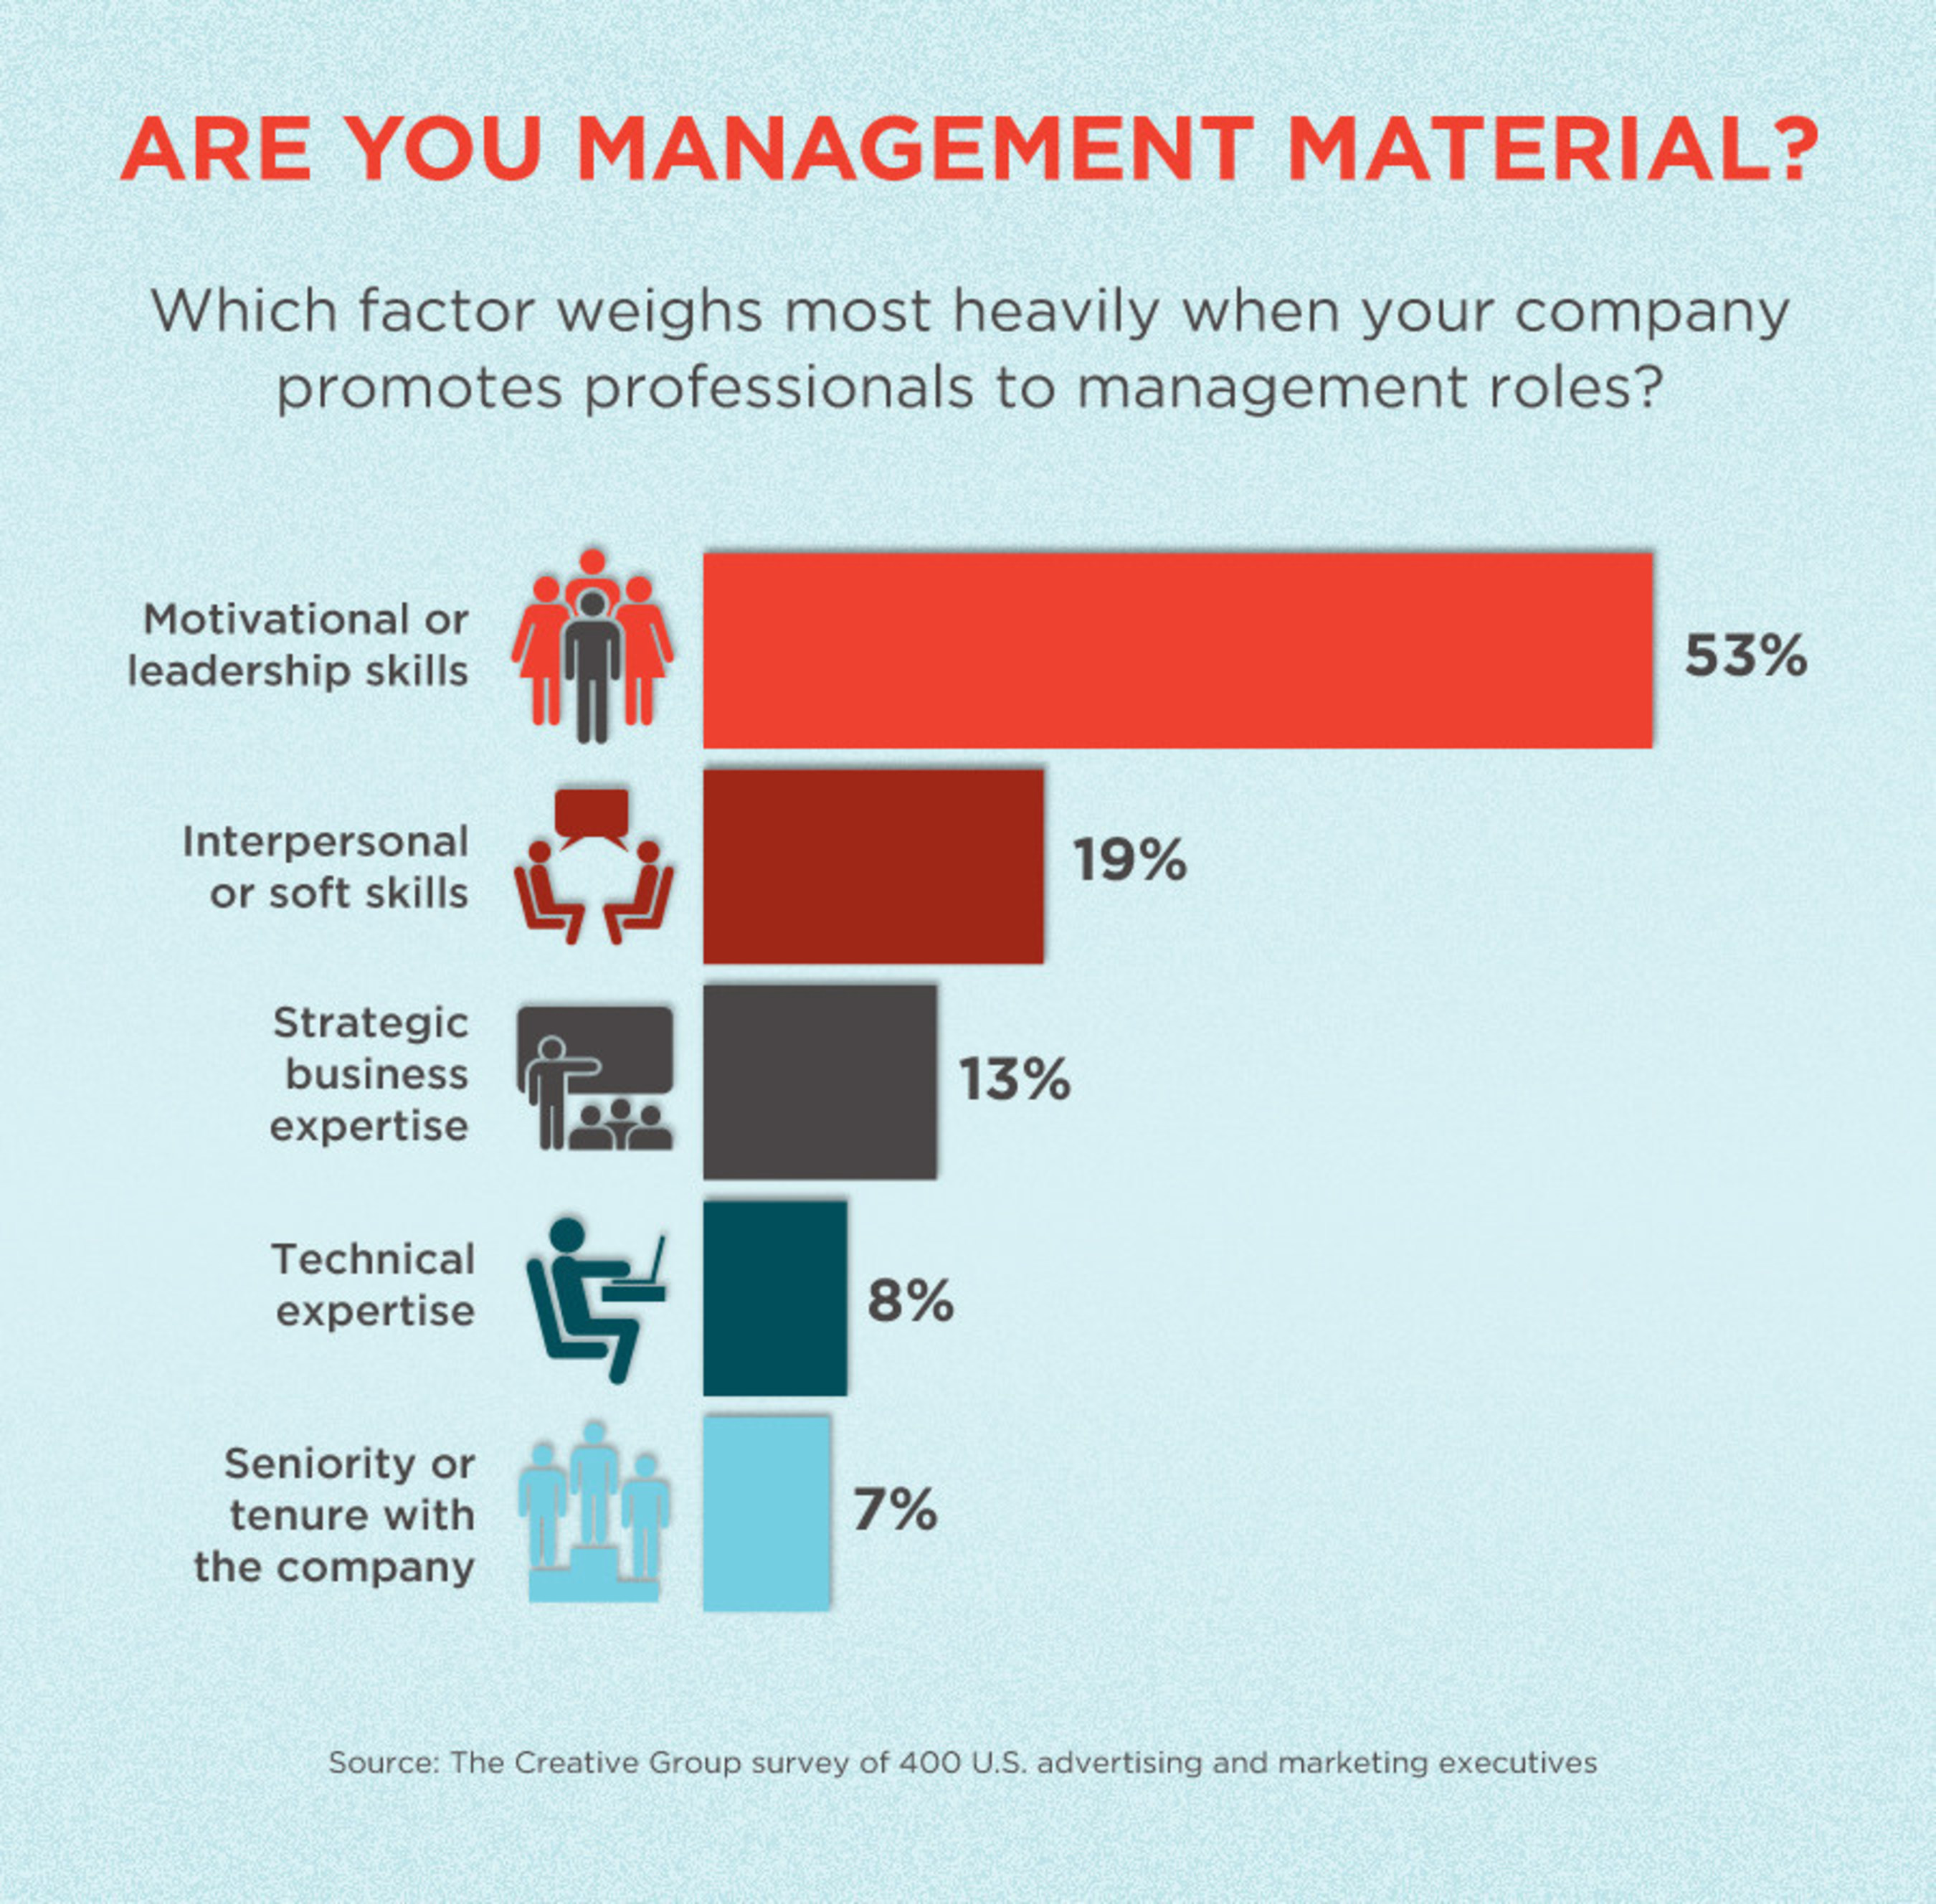 Survey shows motivational skills are essential for moving into a management role